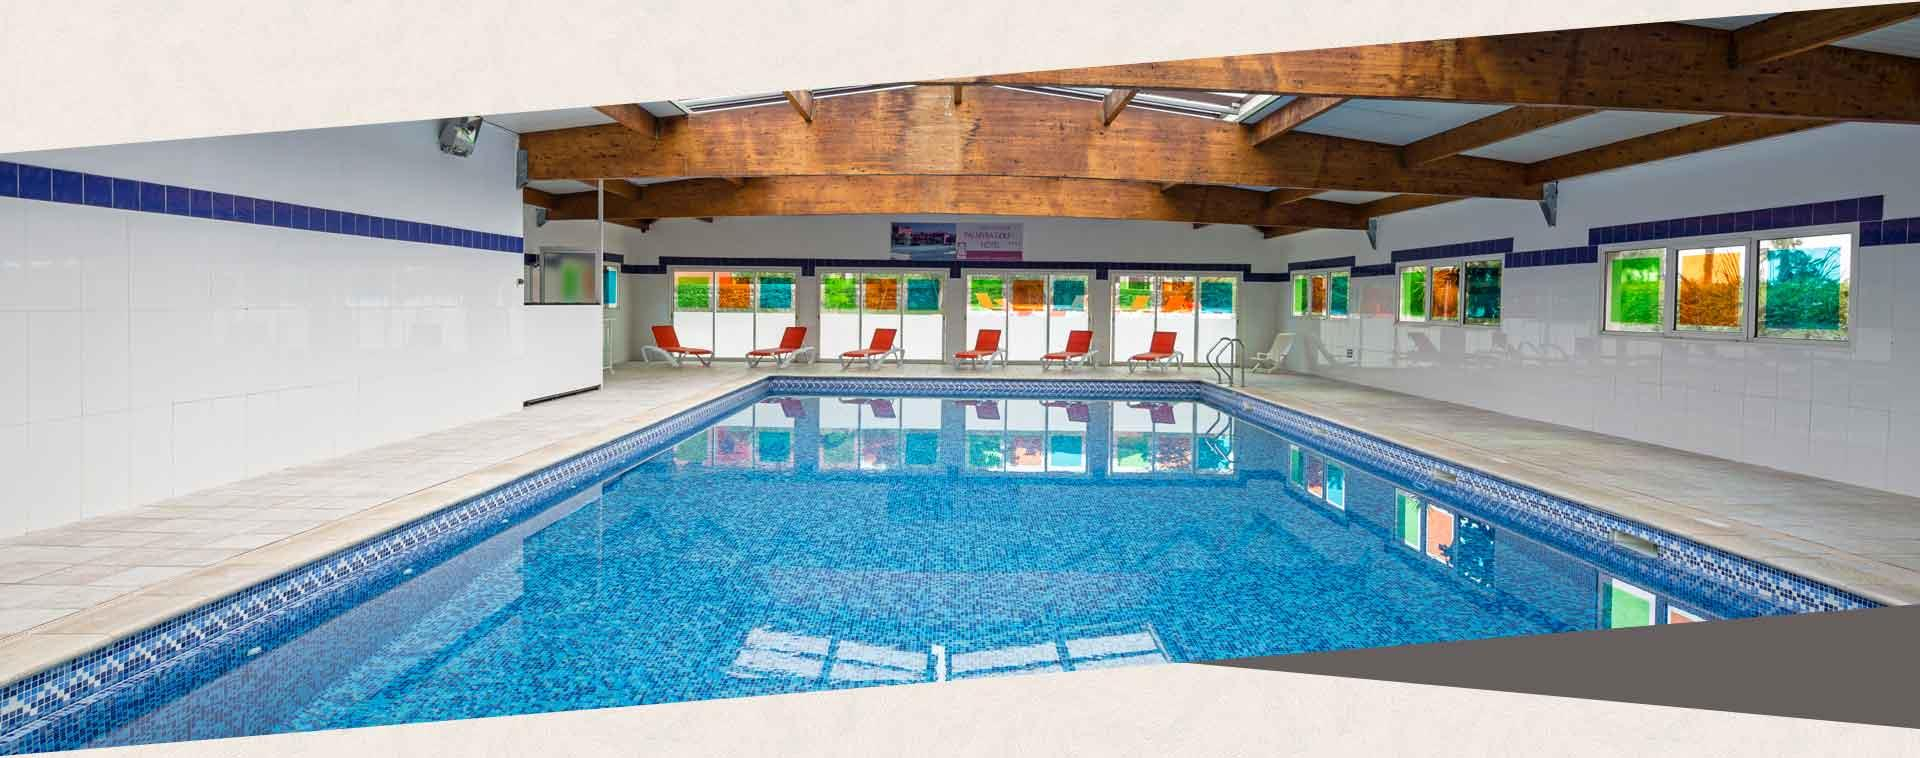 The indoor heated pool with solarium at the 4-star Palmyra Golf hotel in Cap d'Agde, Occitanie